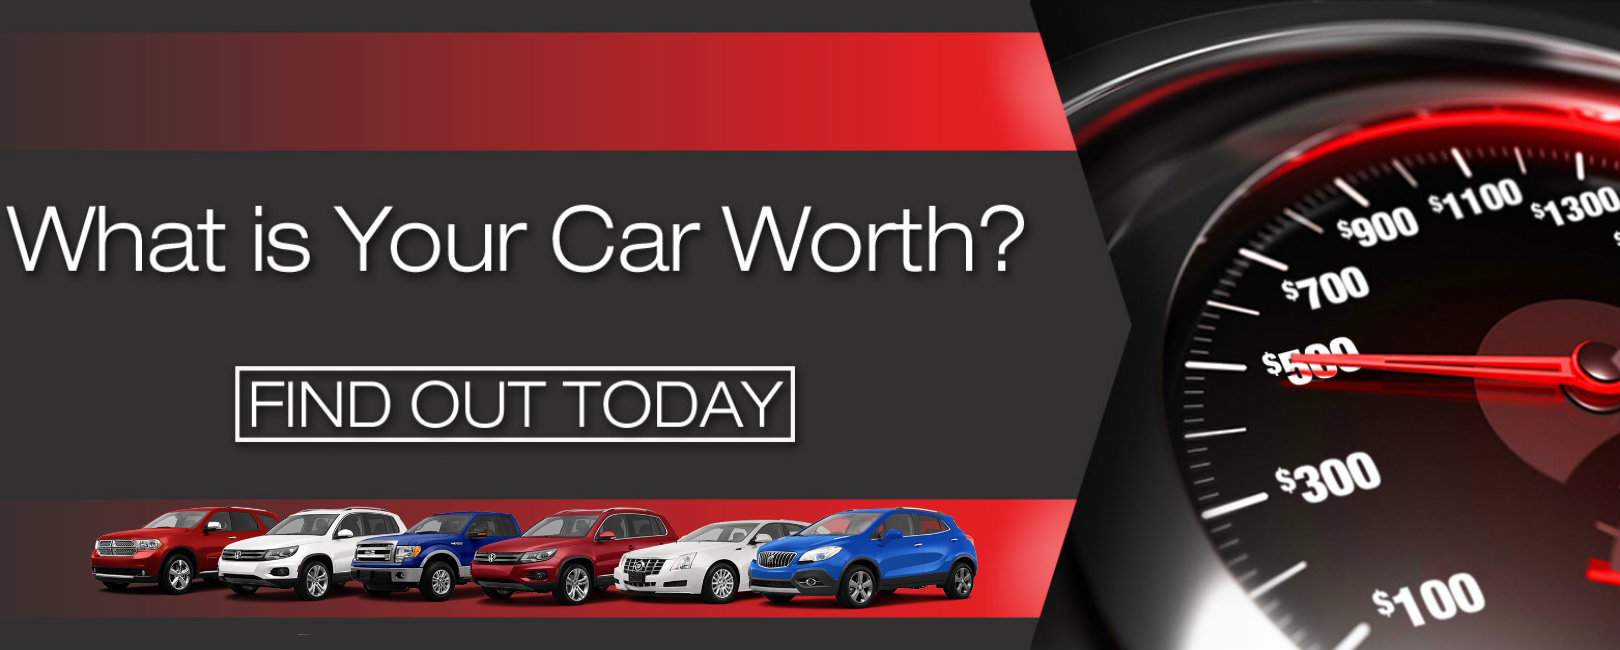 Sell Car Moreton Bay